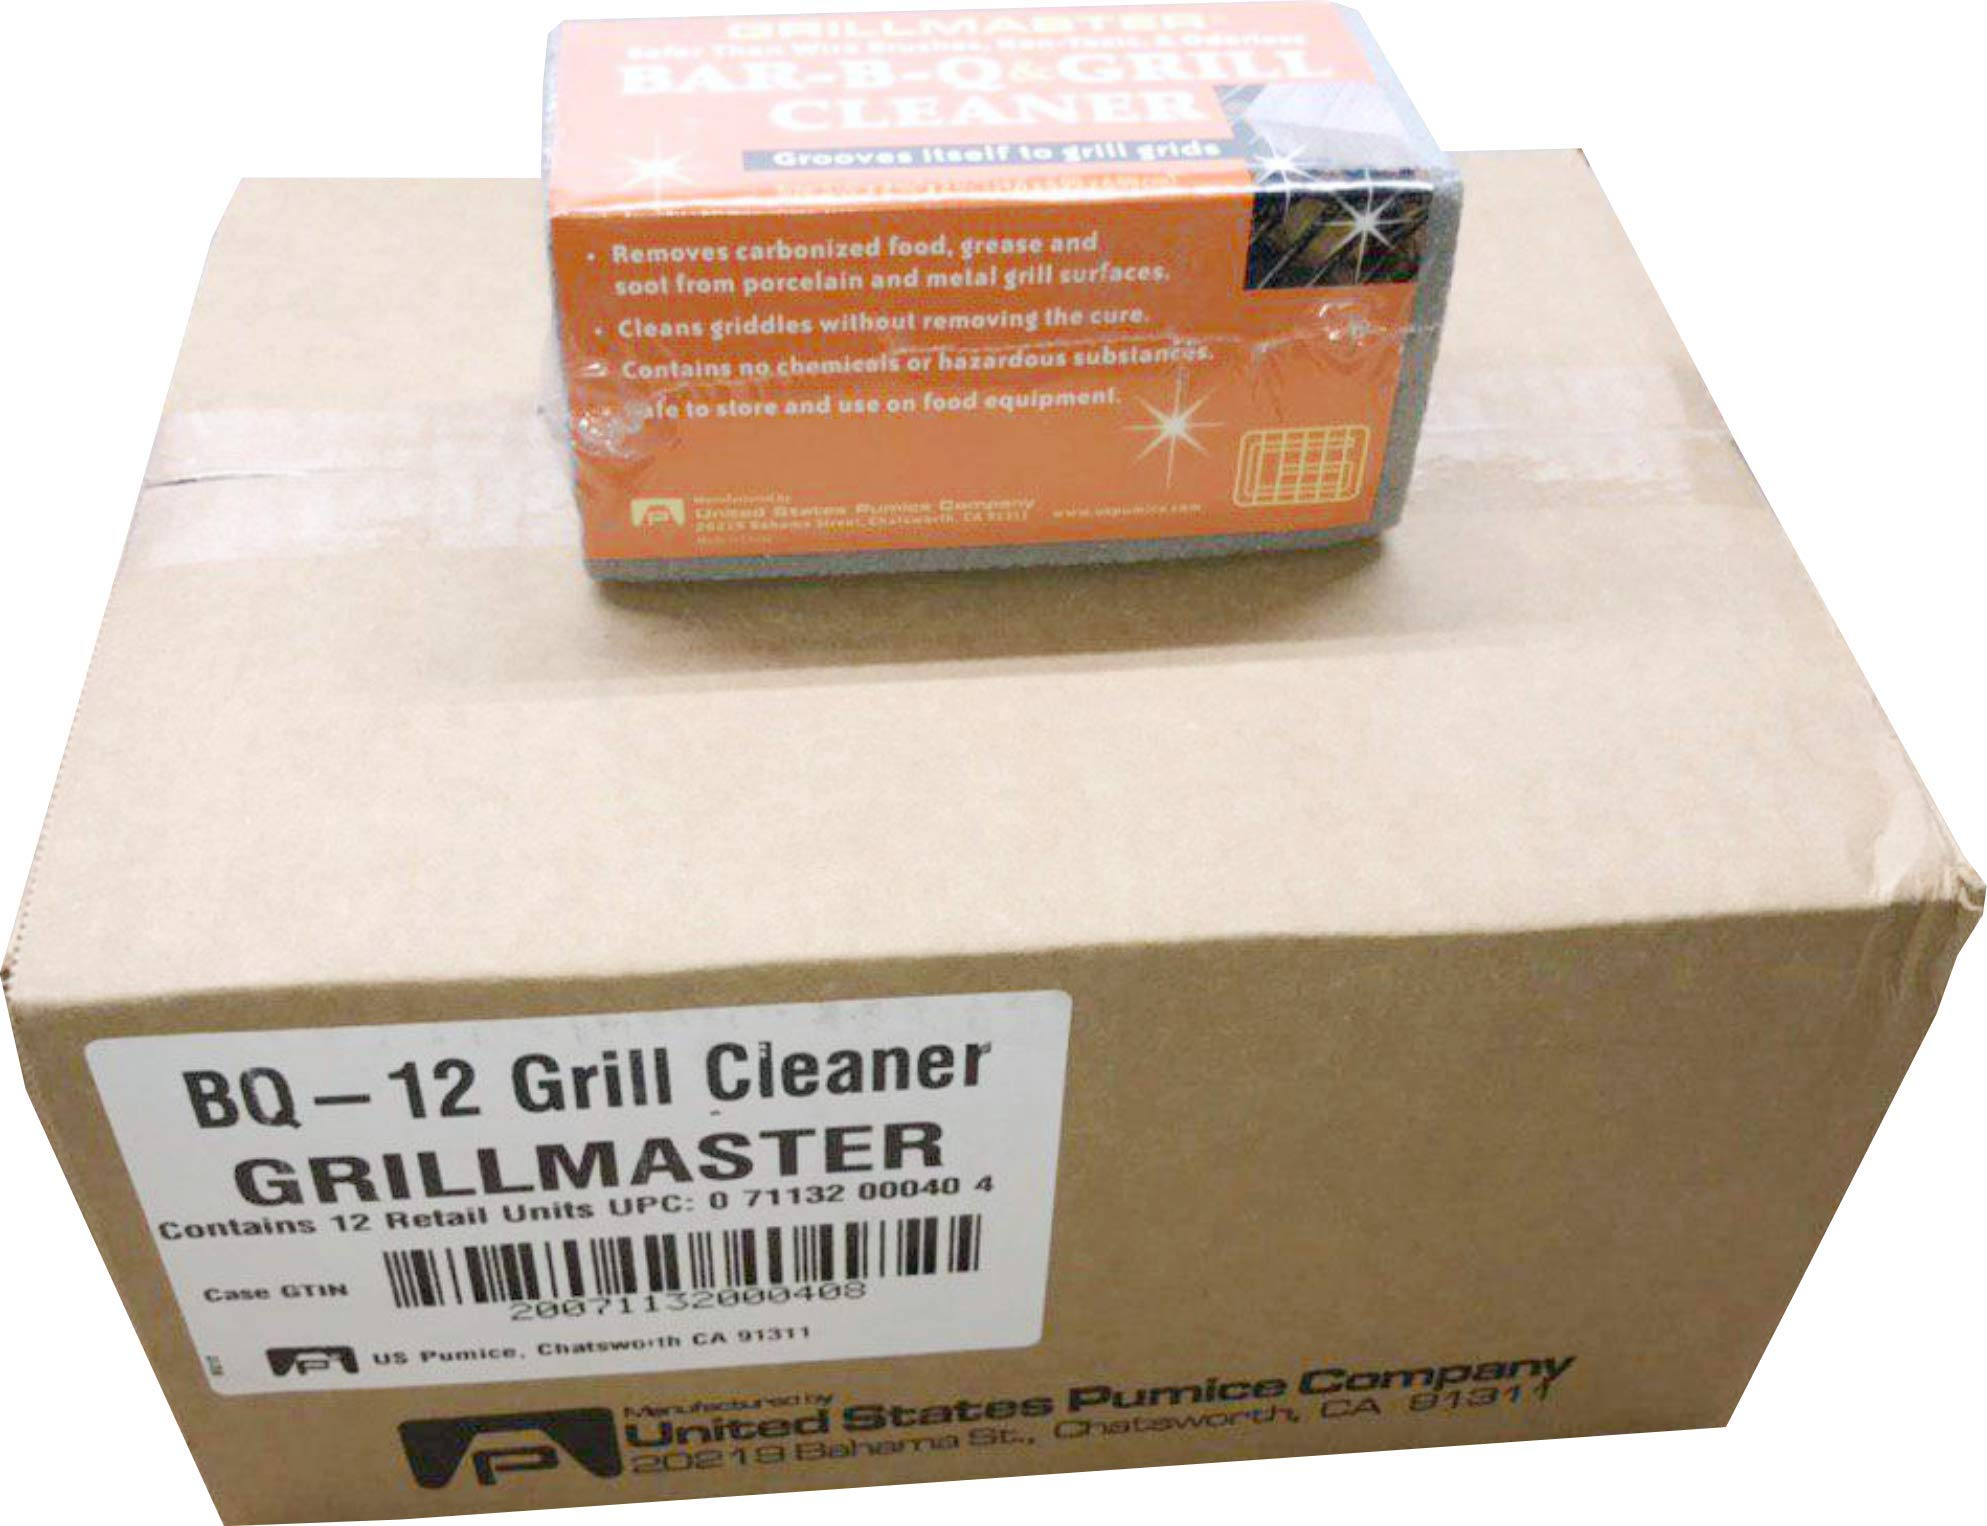 Grillmaster | BQ-12 | BBQ Cleaner Pumice Stone | Case of 12 | GrillBrick for Grill Cleaning | Medium Size | 5.75x2.75x2.75 inches (12) by GRILLMASTER